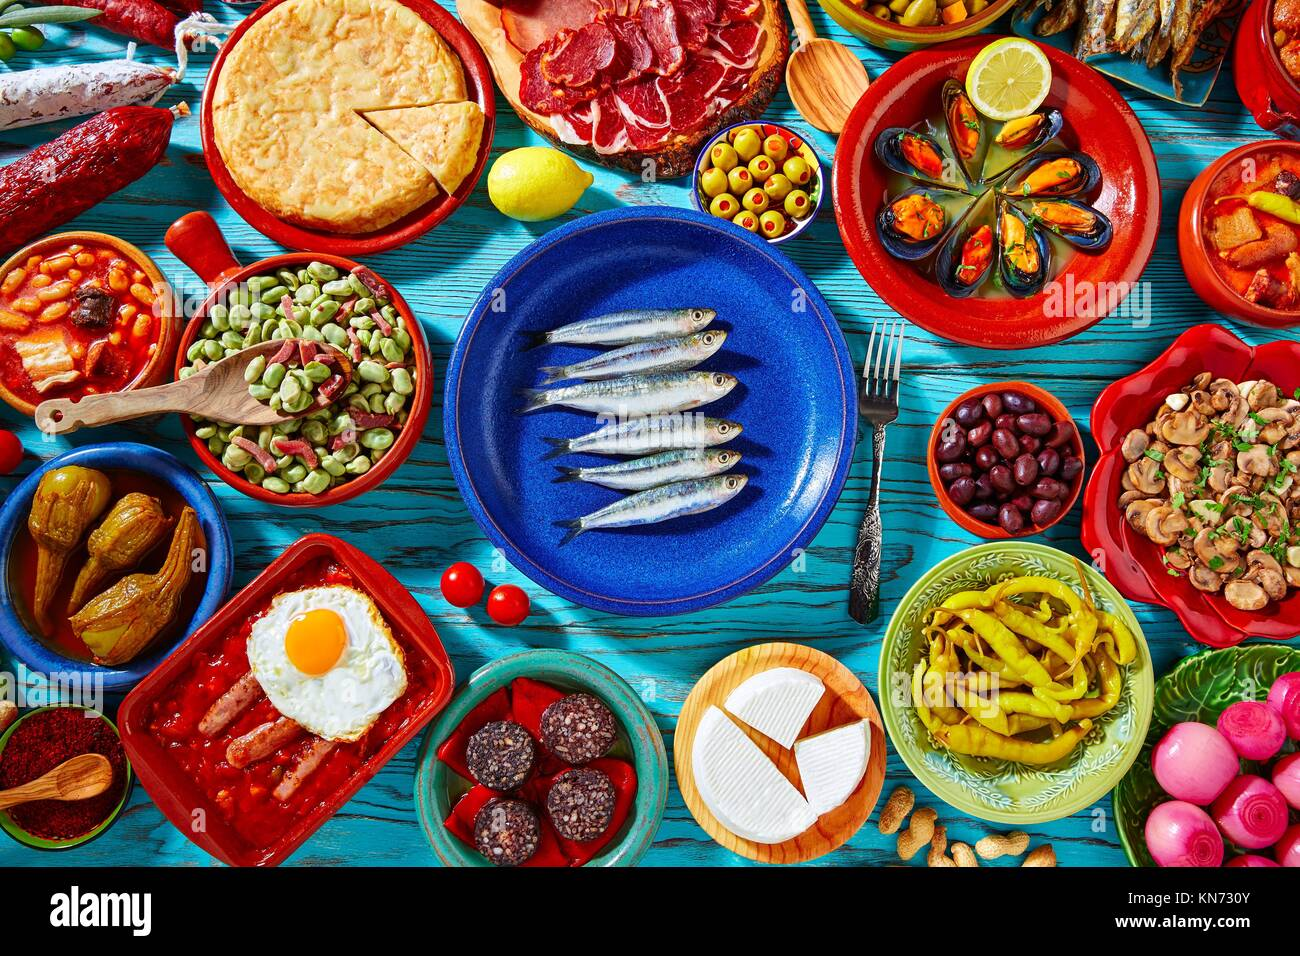 Tapas from spain mix of most popular recipes of Mediterranean cuisine. - Stock Image